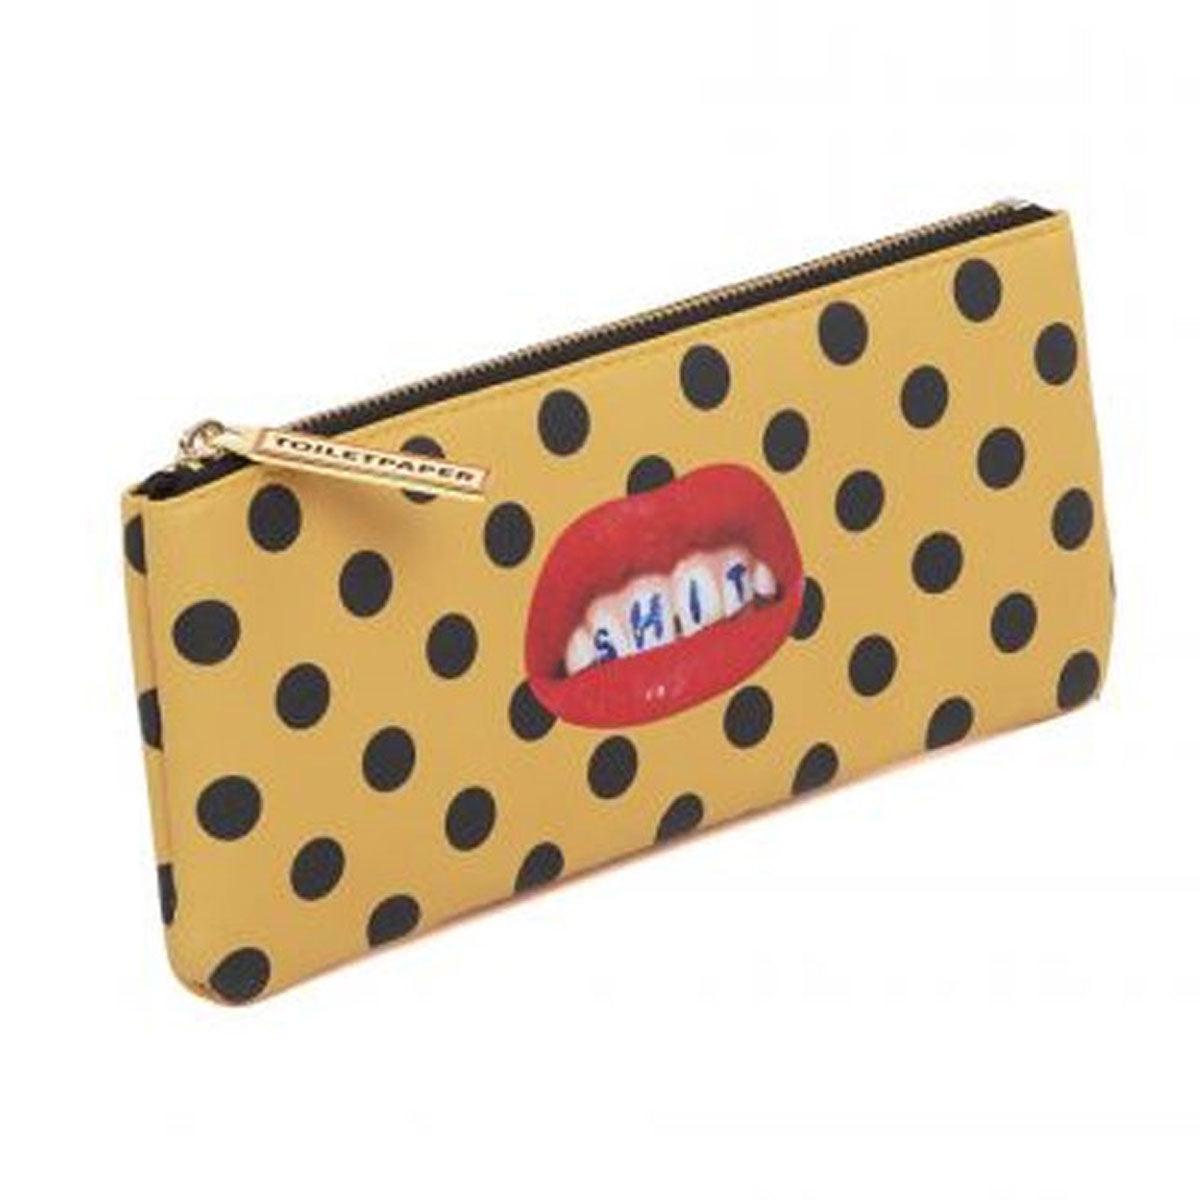 Pencil Case 'Shit'